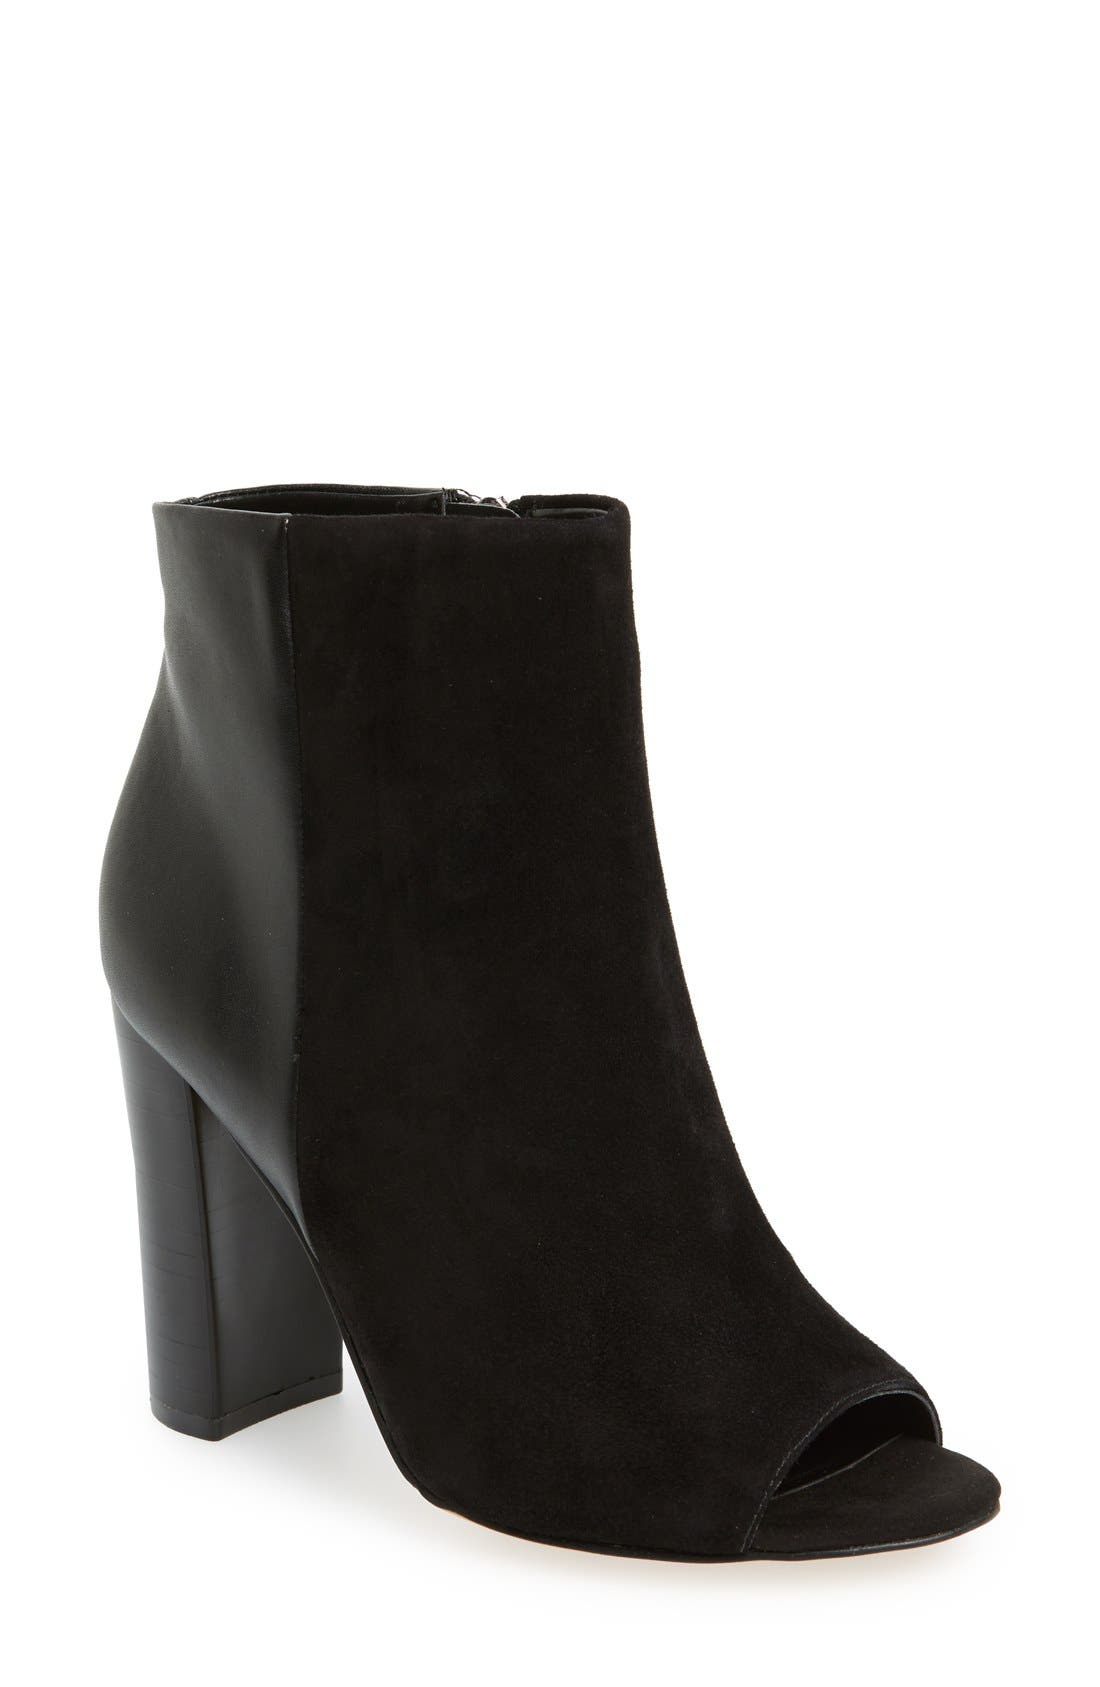 'Yarin' Open Toe Bootie, Main, color, 001